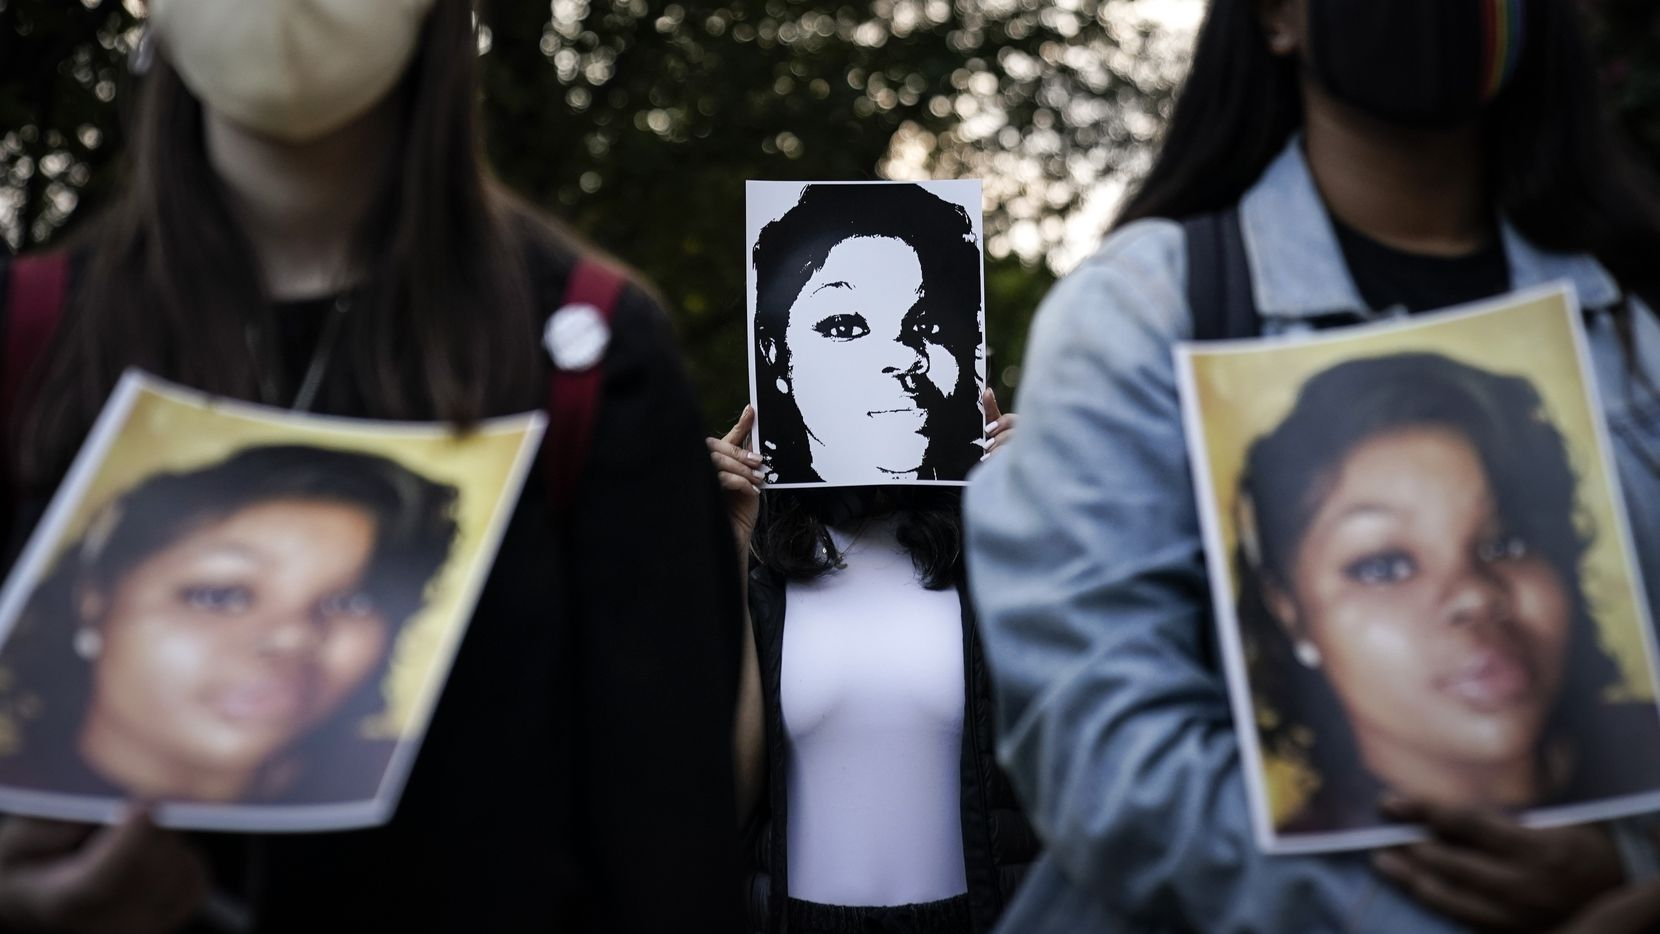 Demonstrators holding up images of Breonna Taylor rally in front of the U.S. Department of Justice building after grand jurors declined to indict Louisville, Ky., police officers on murder charges in Taylor's death in March.